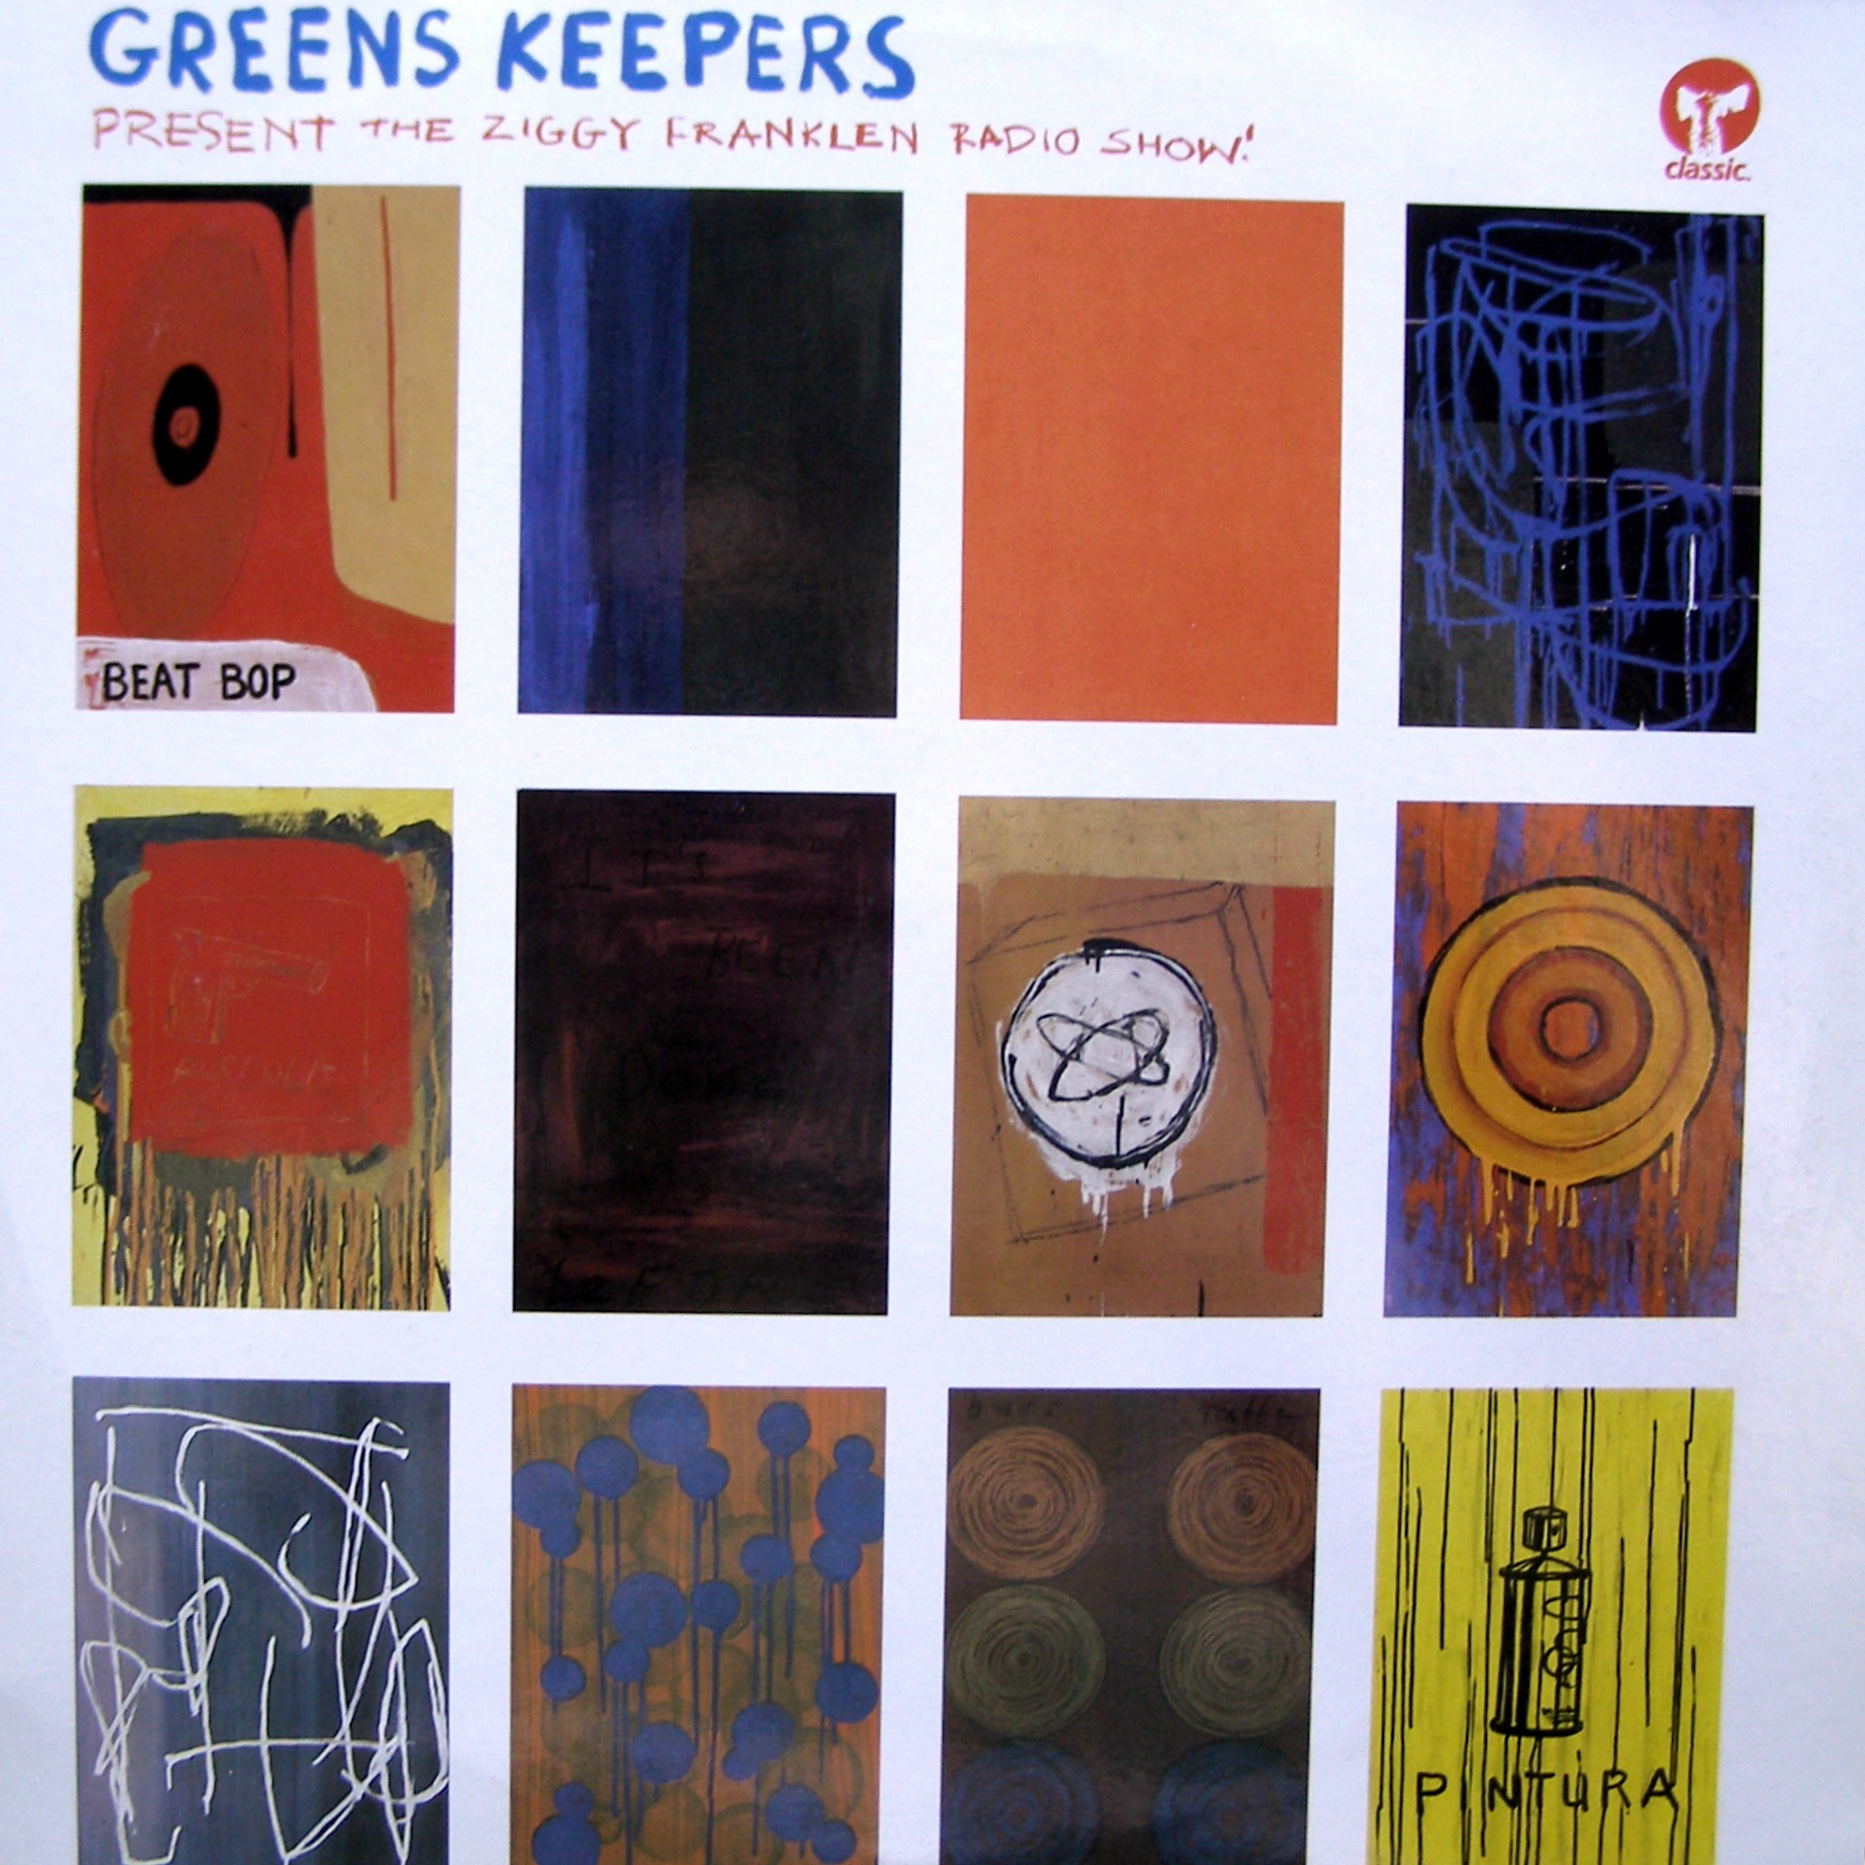 "2x12"" Greens Keepers ‎– Greens Keepers Present The Ziggy Franklen Radio Show"